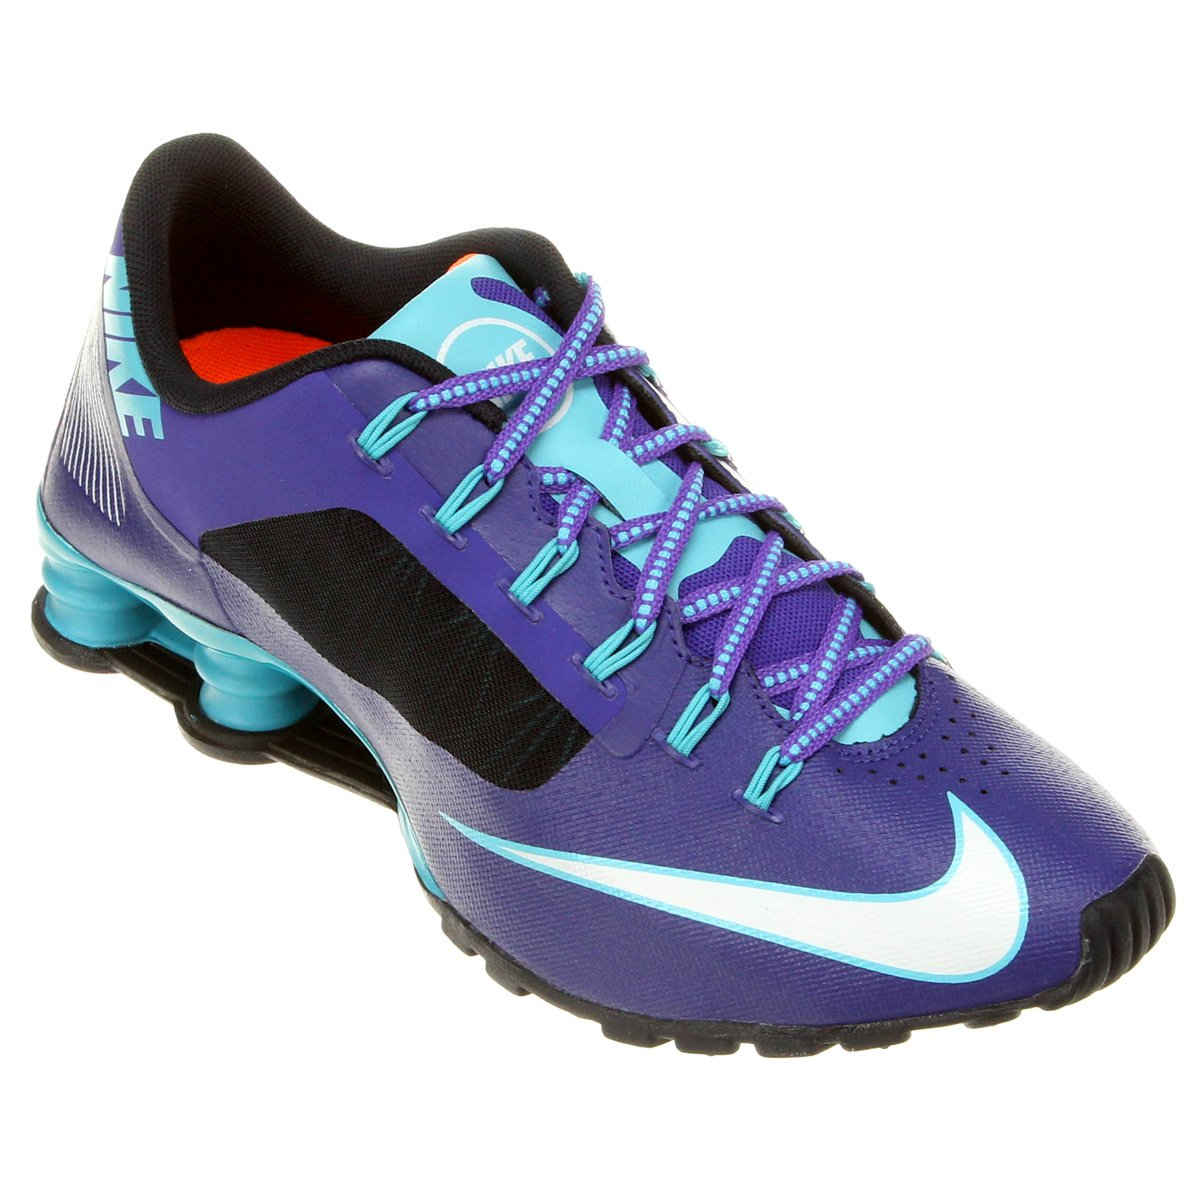 outlet store bf3bf dbba9 closeout tênis nike shox superfly r4 2331b bf162